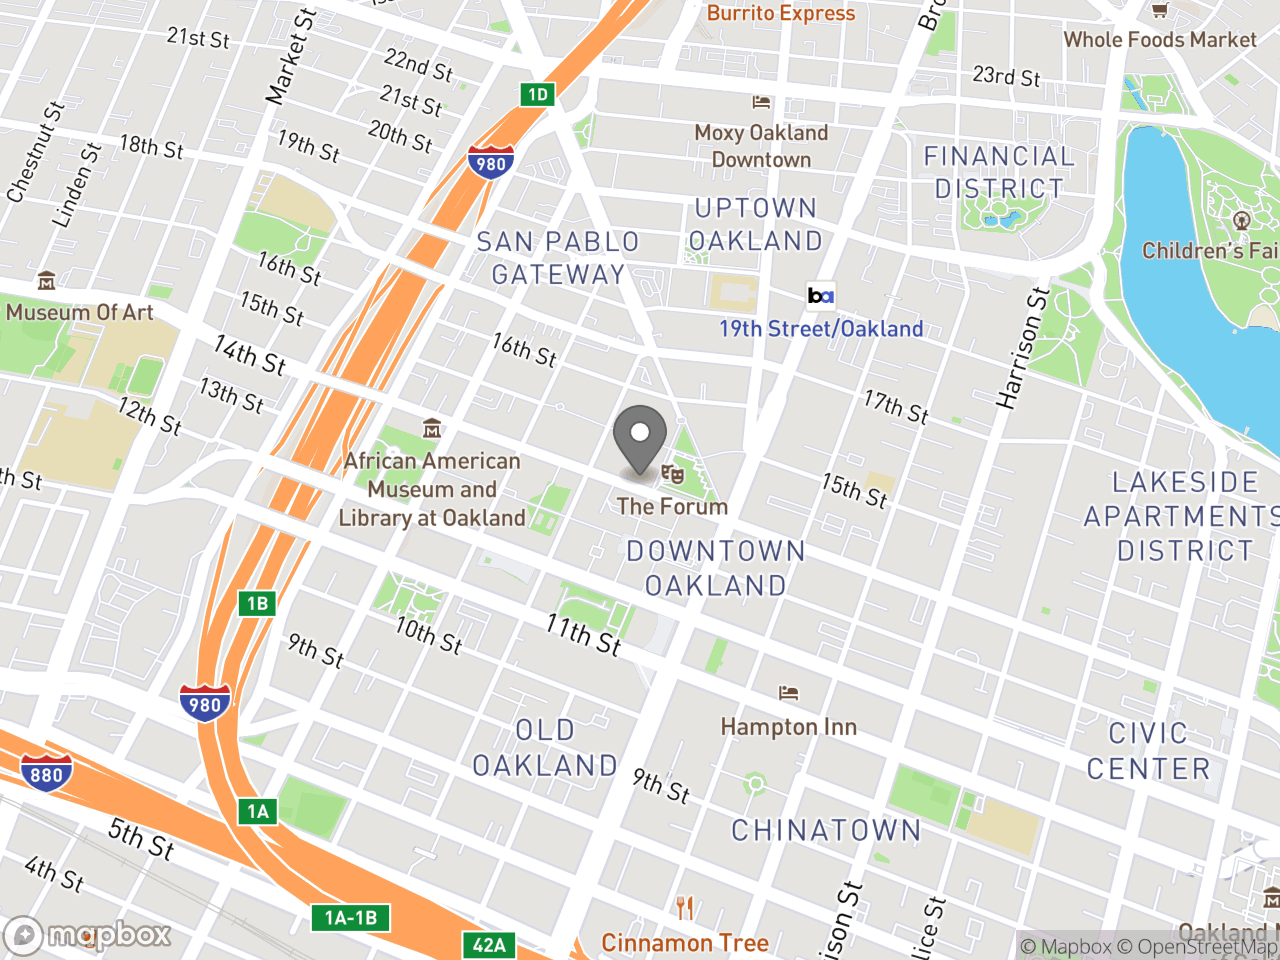 Map location for Mayor's Commission on Persons with Disabilities, January 28, 2019, located at 1 Frank H Ogawa Plaza in Oakland, CA 94612